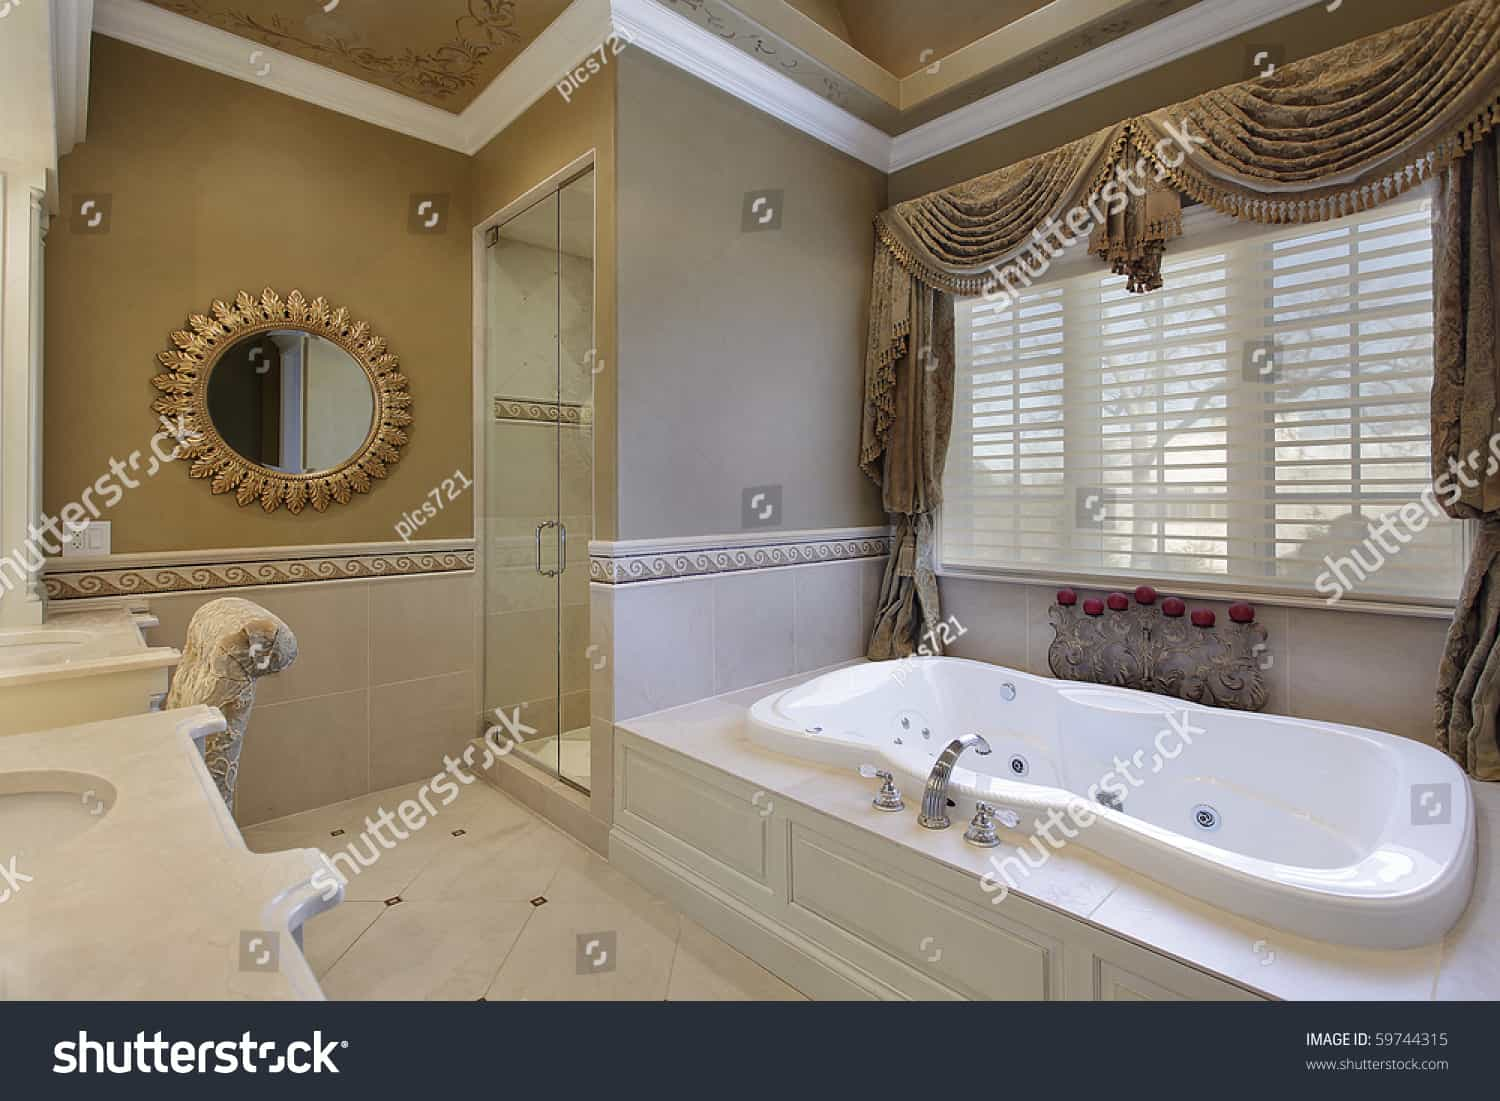 stock photo master bath in elegant home with large tub 59744315